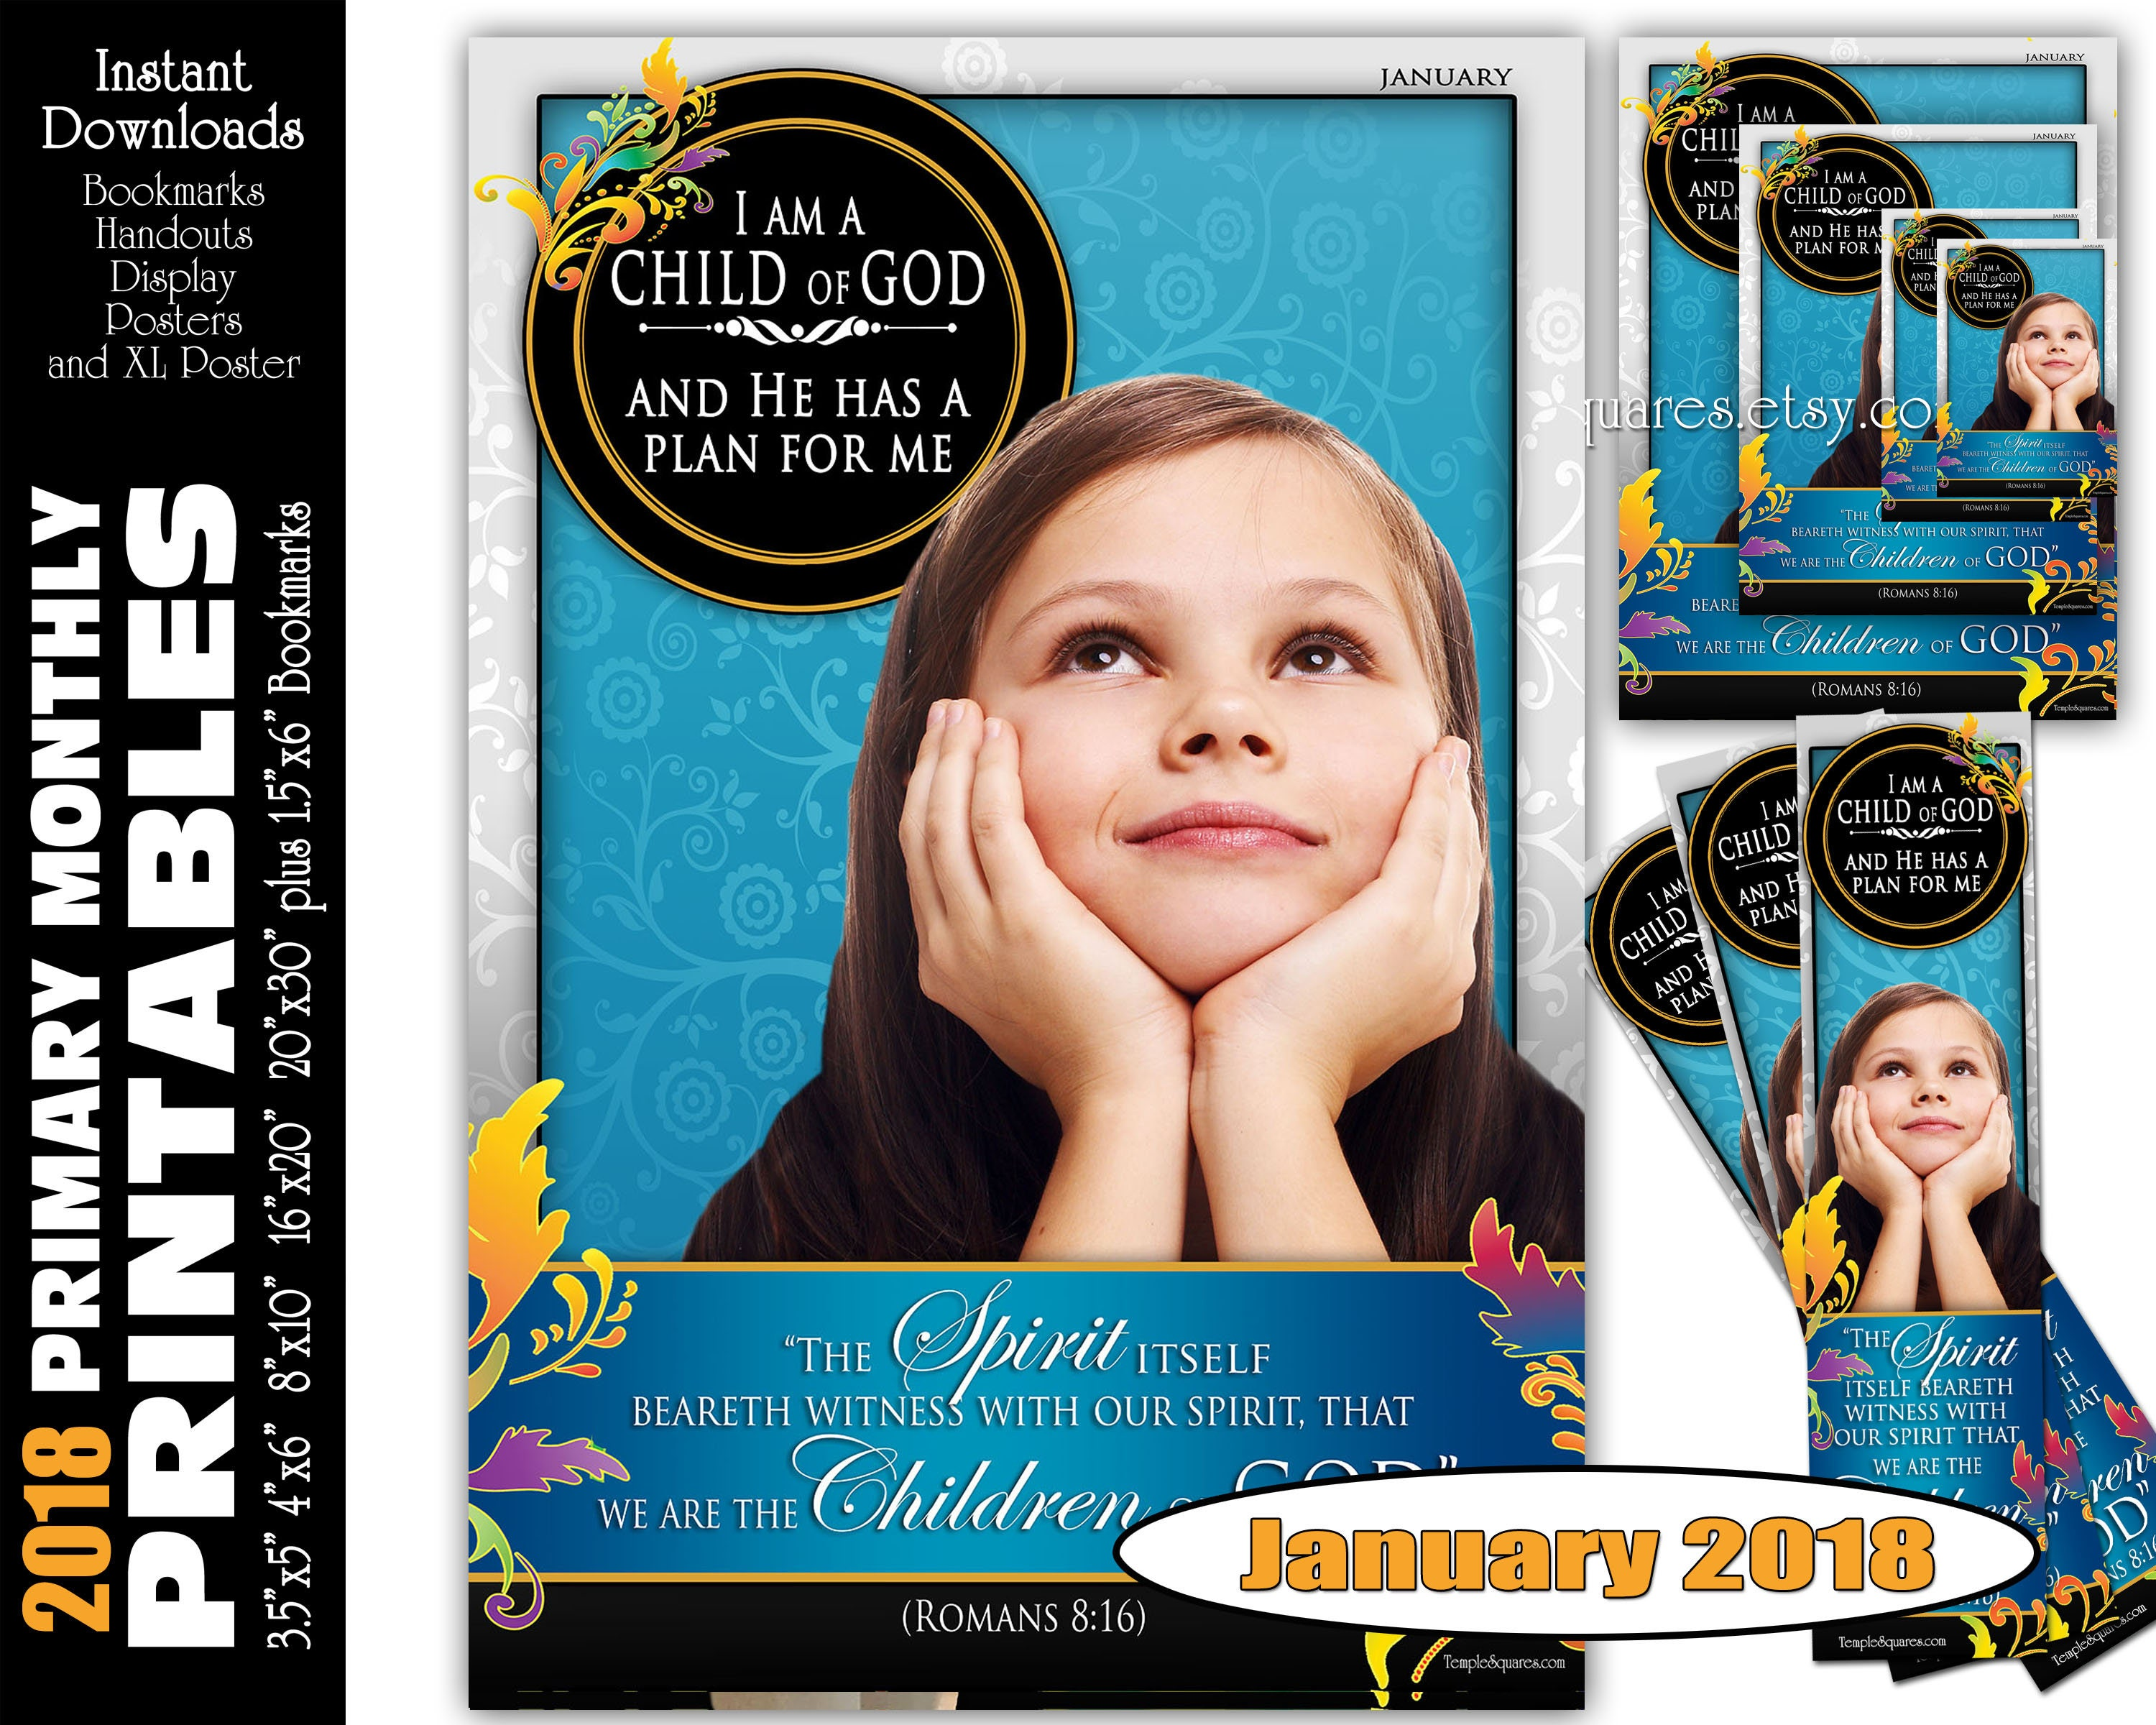 photograph regarding Who I Am in Christ Printable Bookmark known as Printable Main Every month Posters March 2018 I am a Kid of